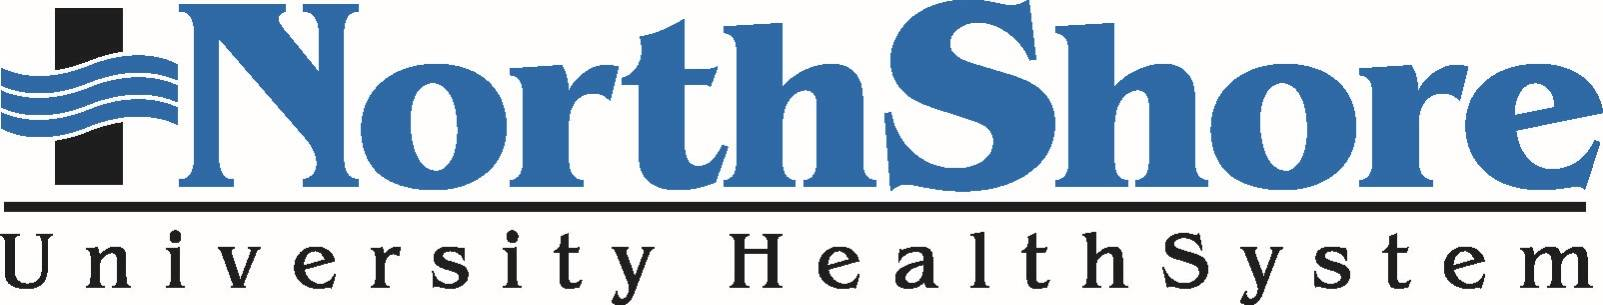 NorthShore University HealthSystem (NorthShore) was recognized as one of the nation's 100 Top Hospitals� by Truven Health Analytics